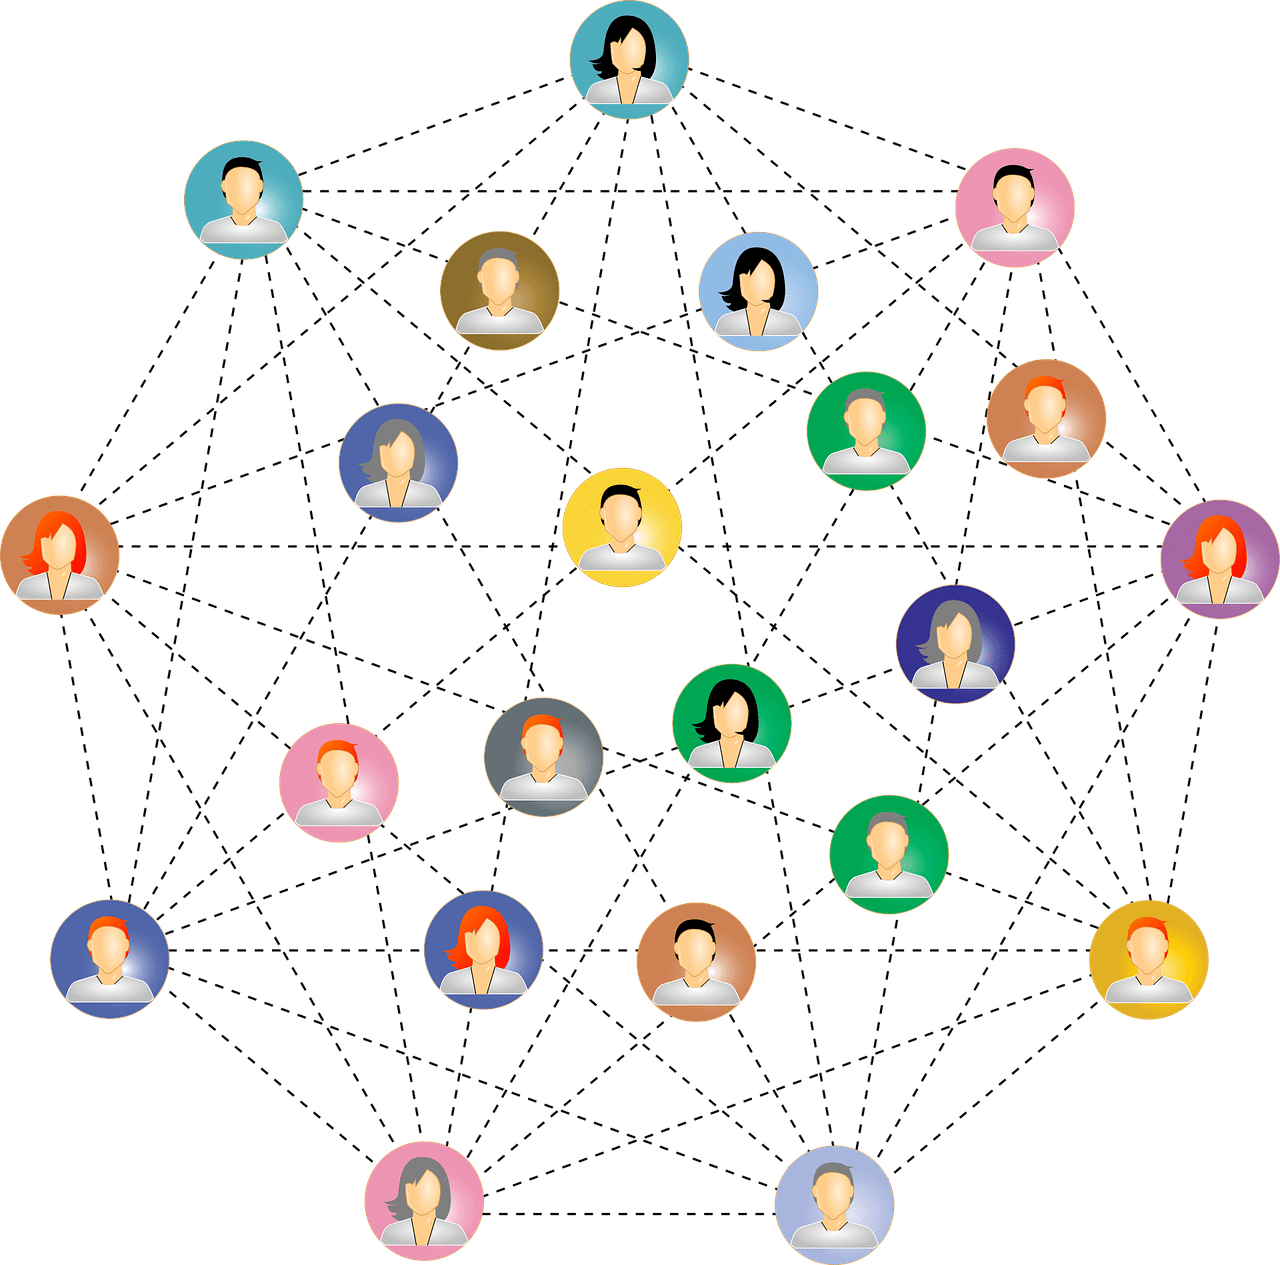 Illustration of network of people